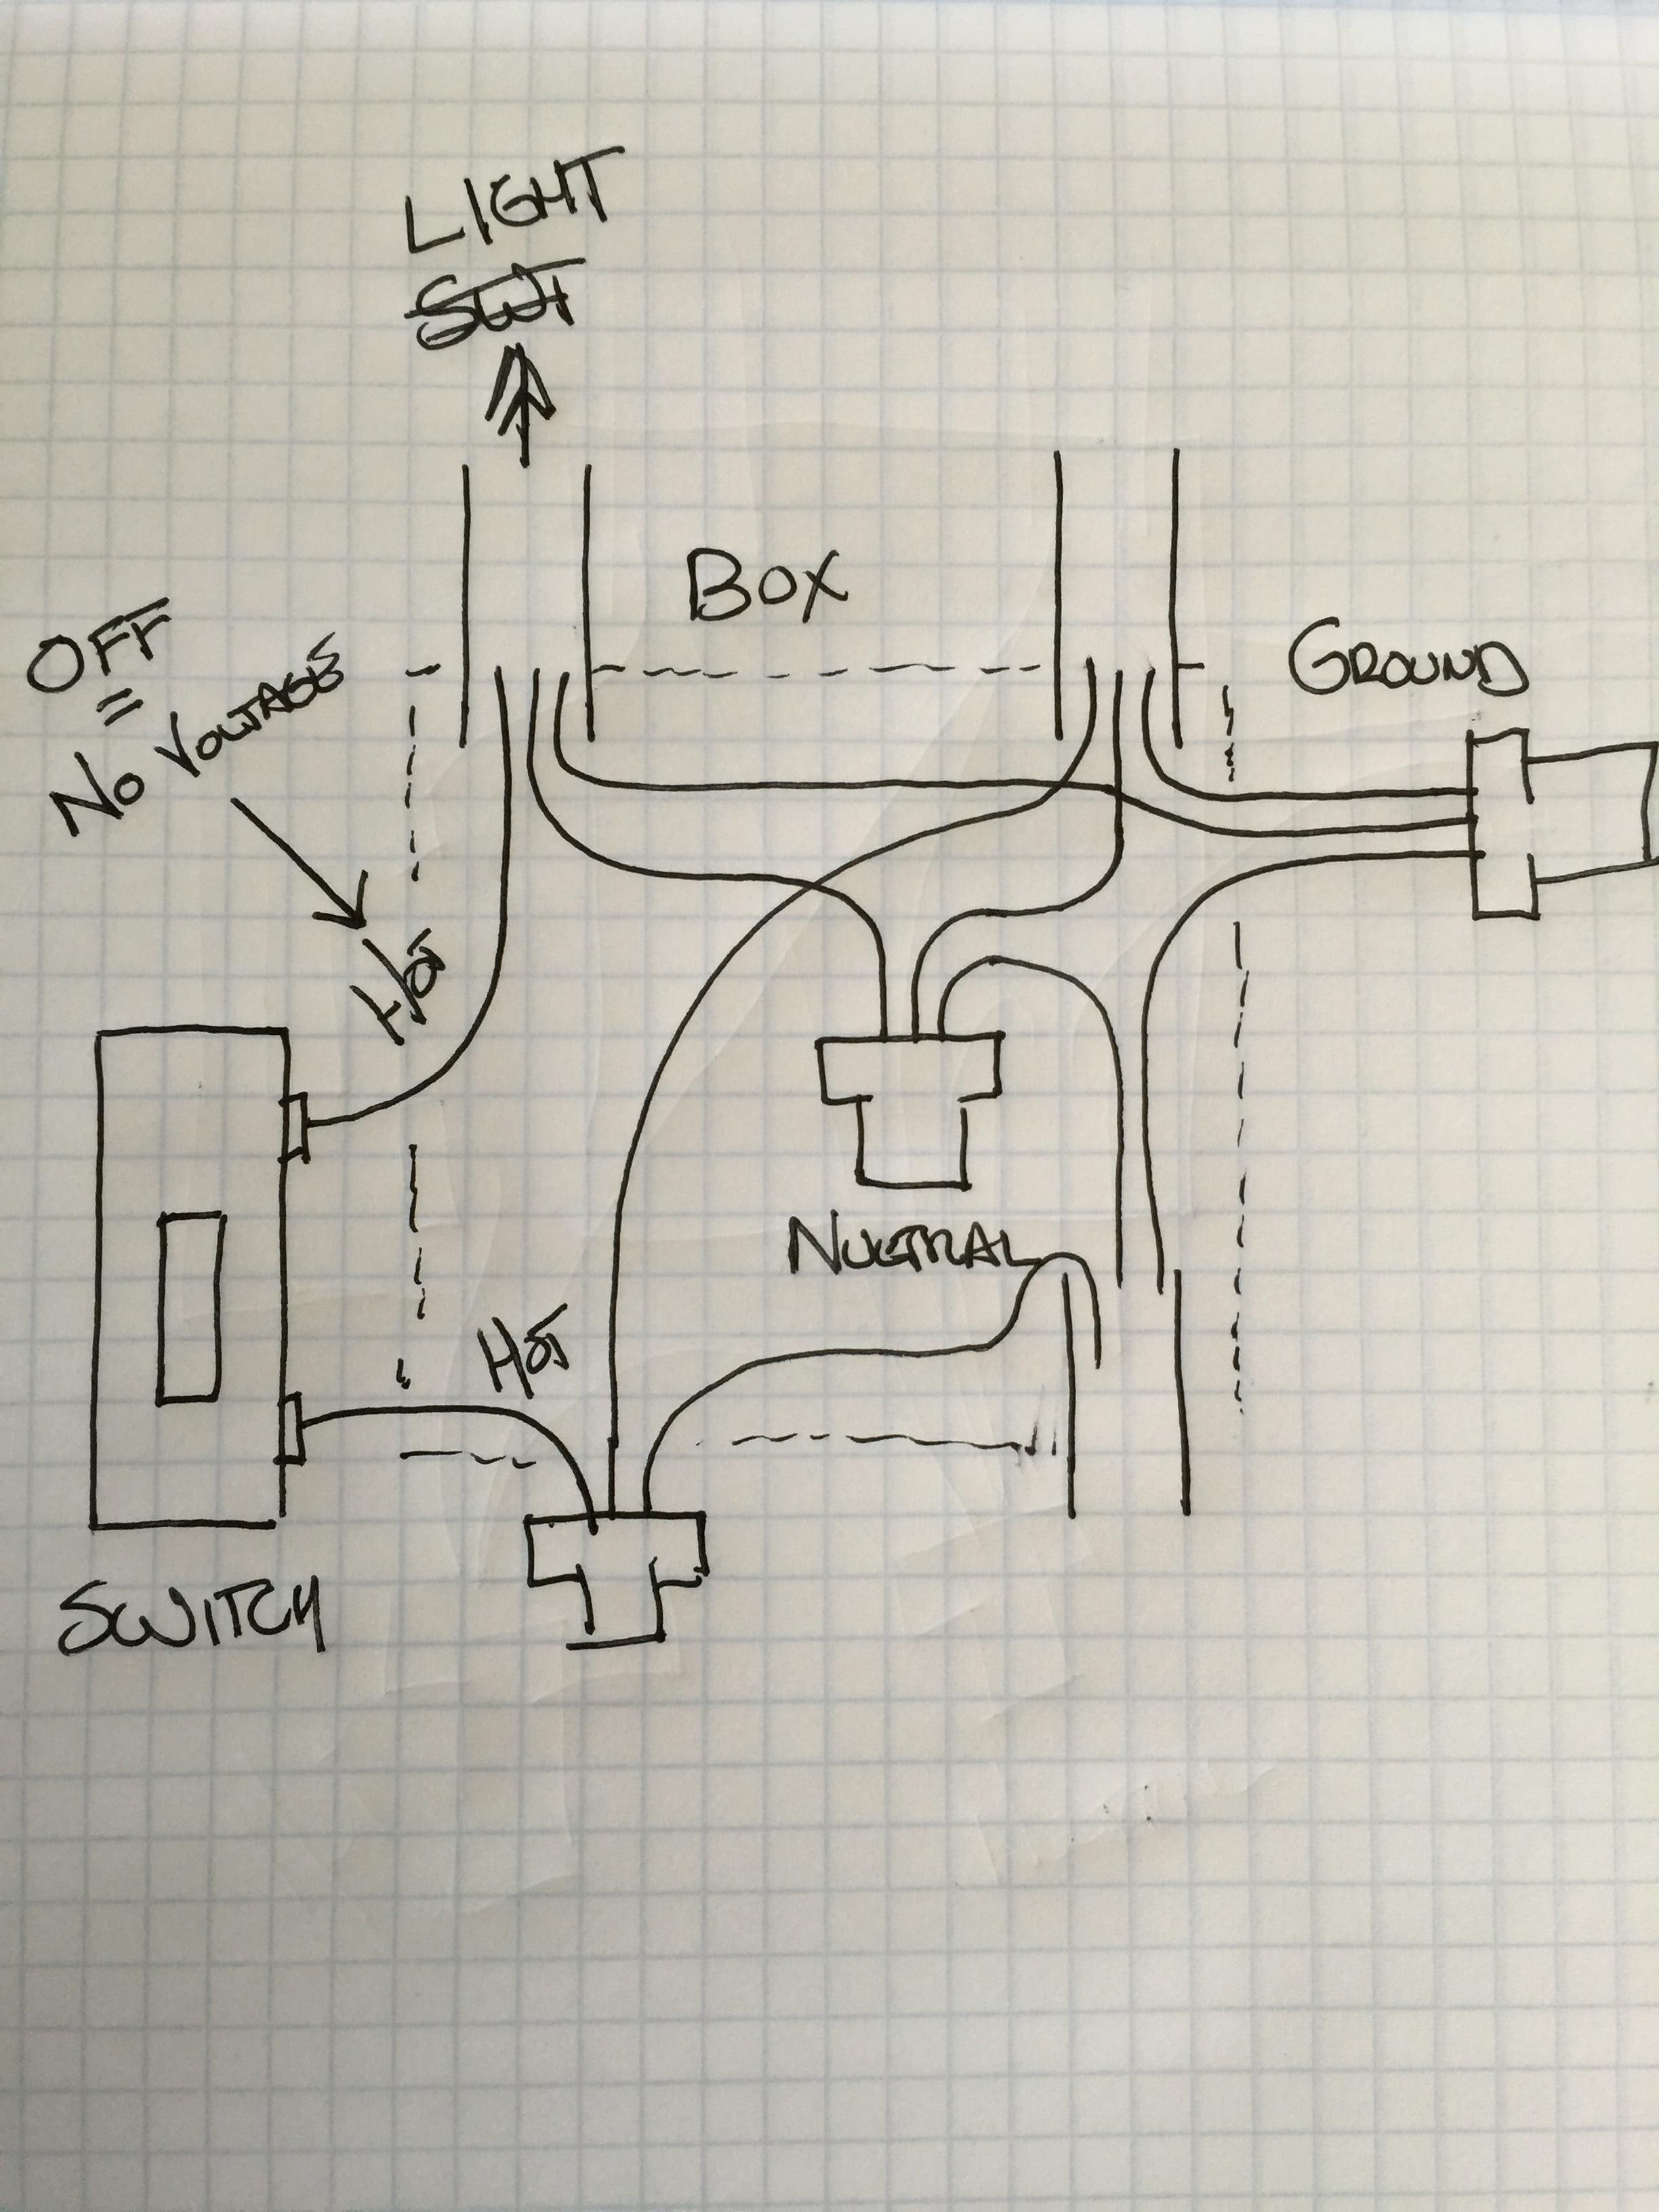 3 way switch diagram 2 lights wiring of ceiling fan with regulator electrical how can i replace a single pole light